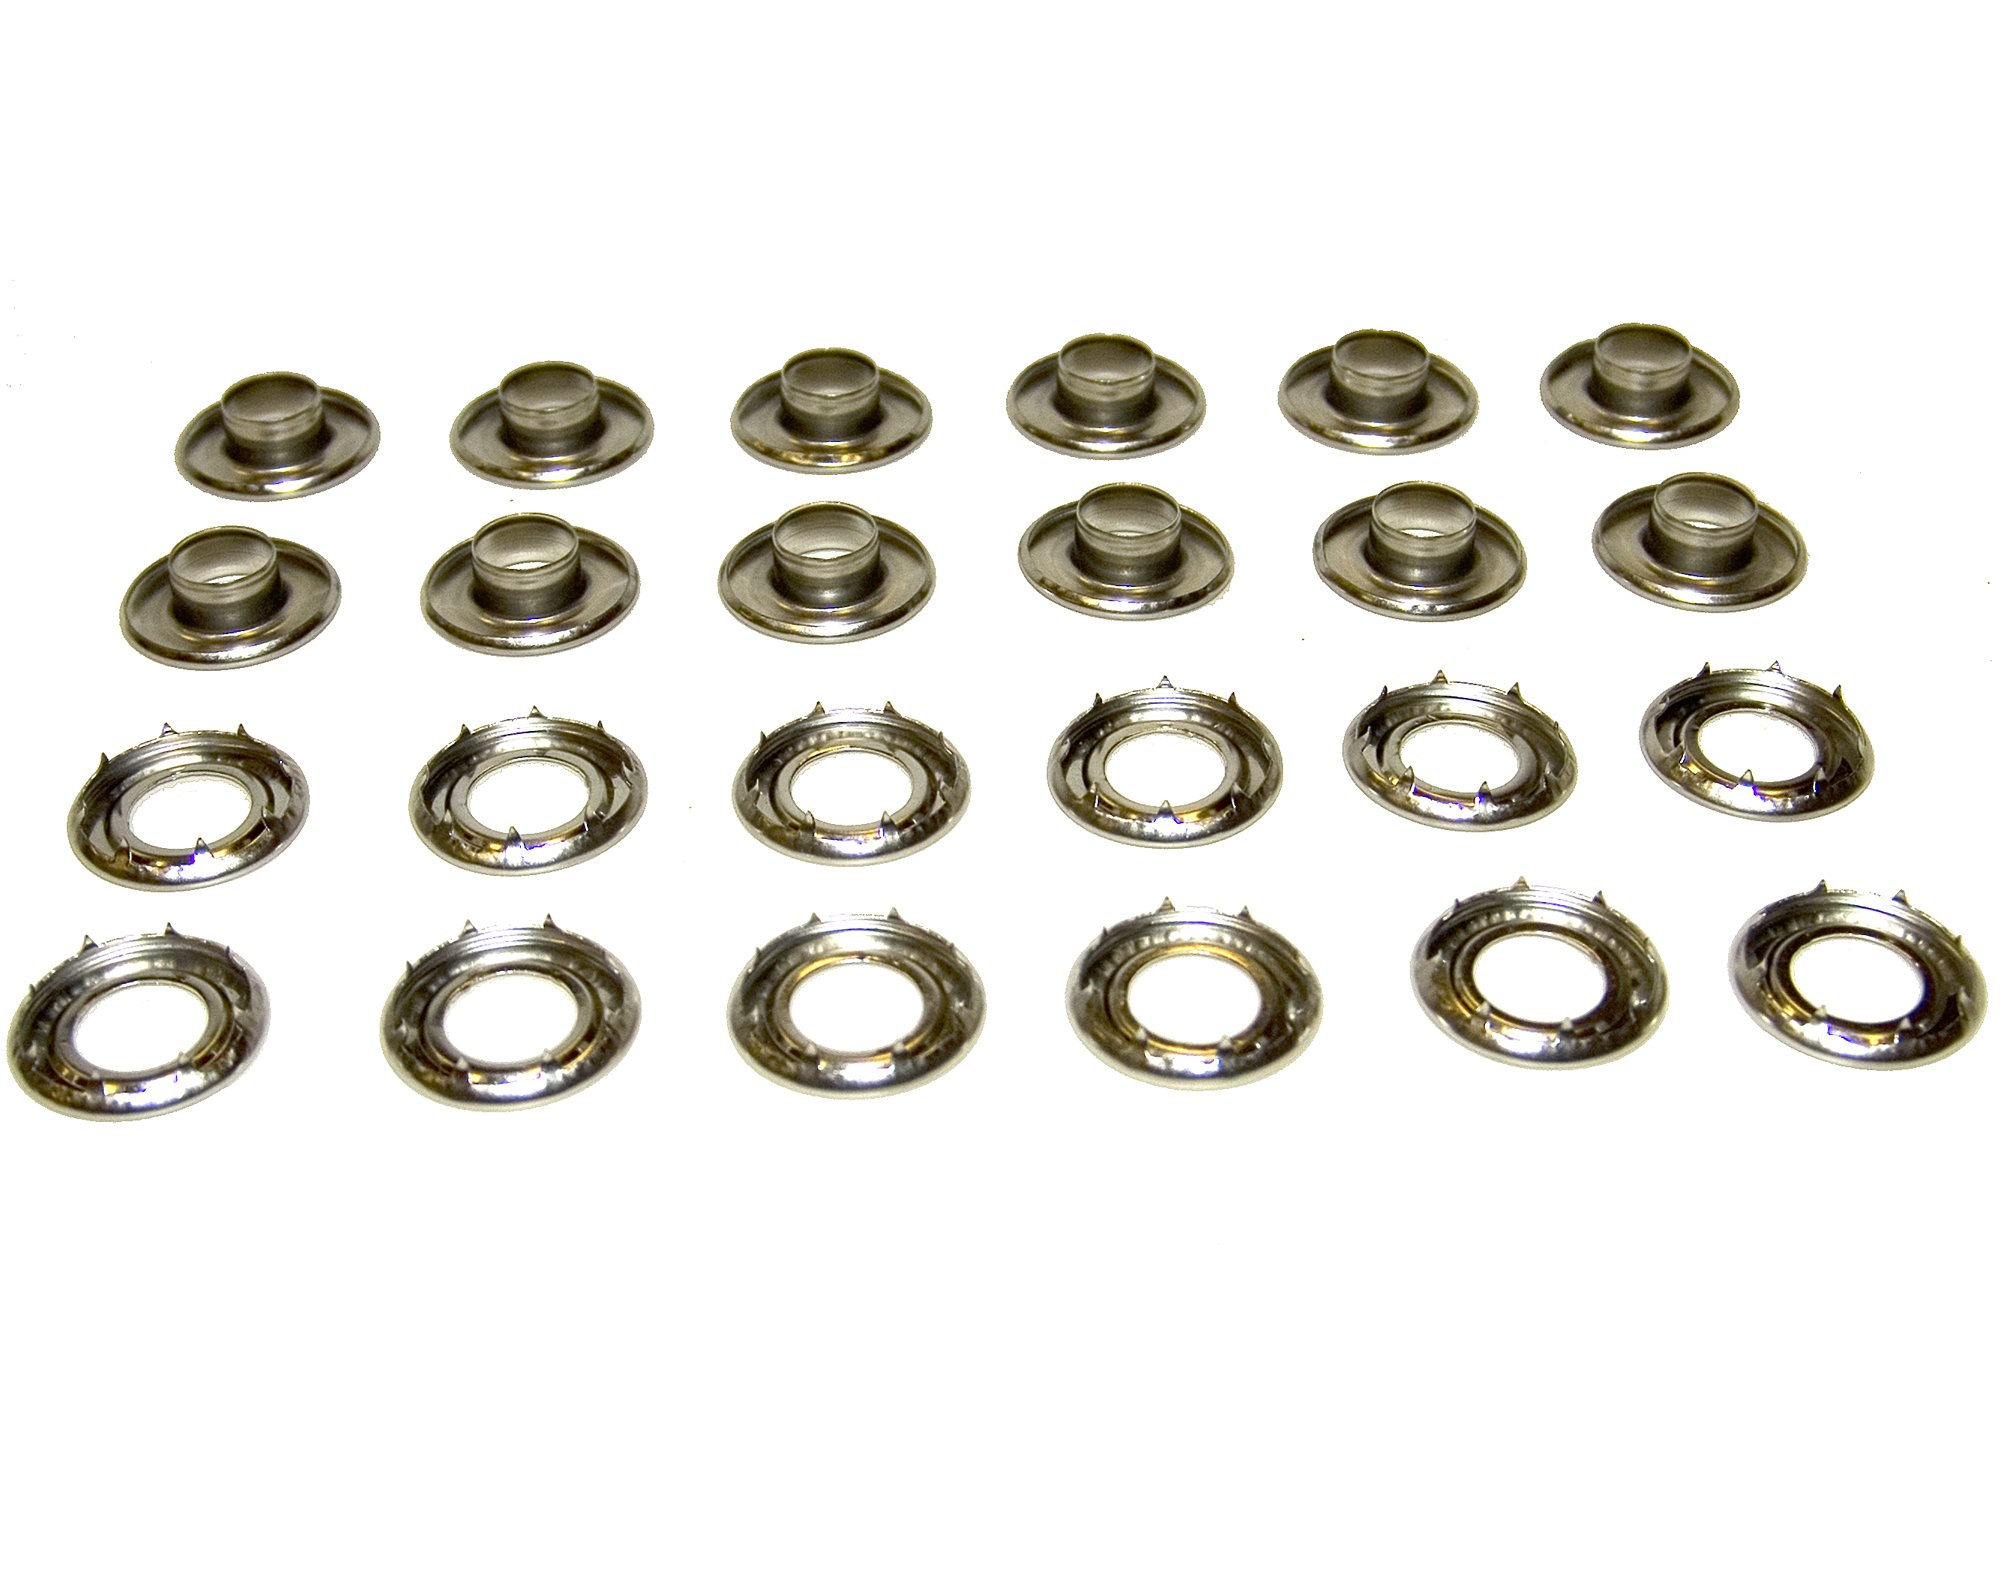 Grommets, 4Rolled Rim Spur, Stainless Steel, Heavy Duty, 12 Piece Set by Northwest Tarp & Canvas